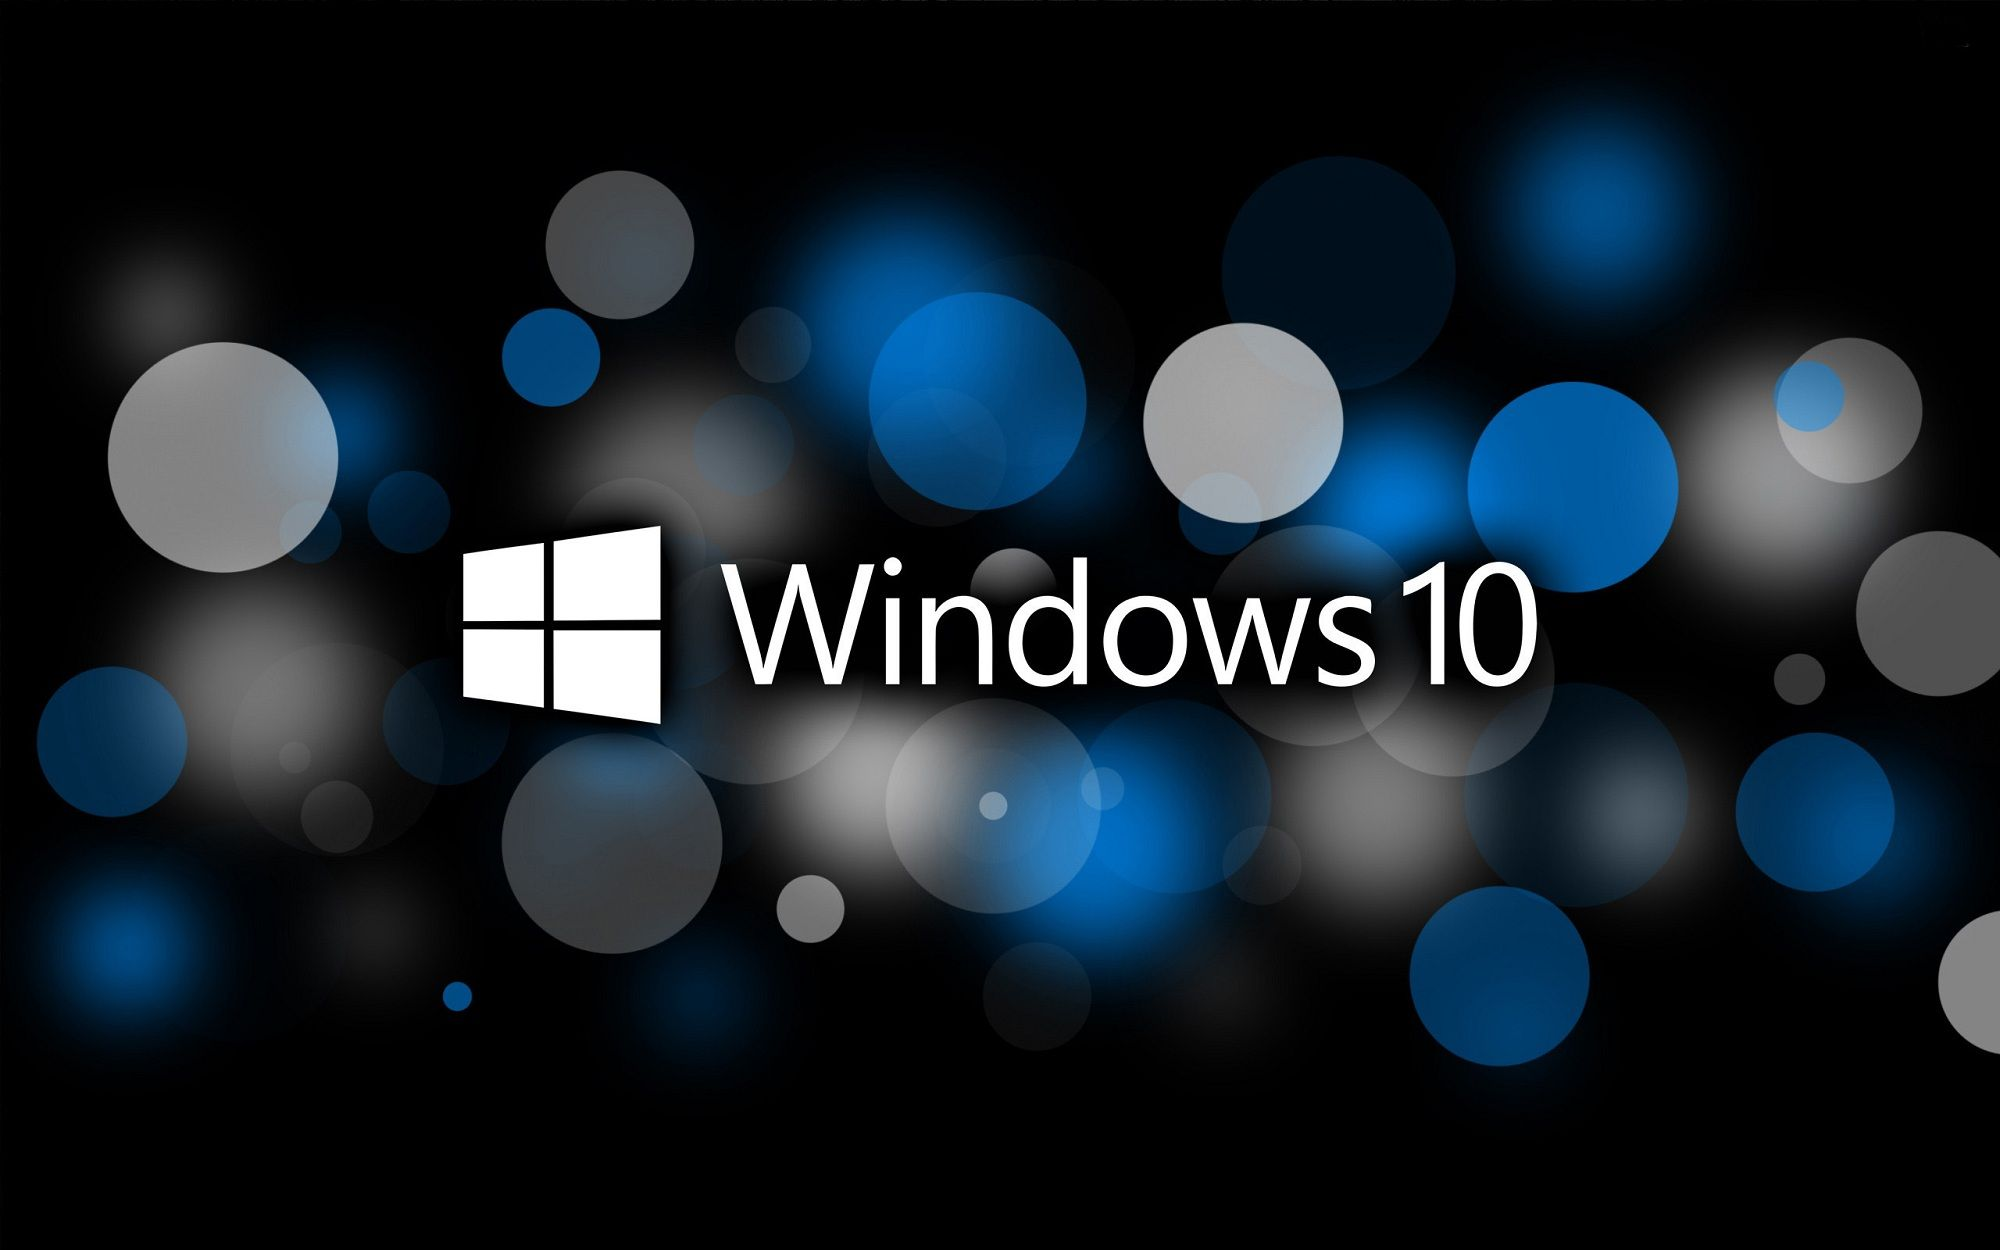 How To Update The Drivers For A Display Connected To Windows 10 Pc Wallpaper Windows 10 Windows Wallpaper Wallpaper App